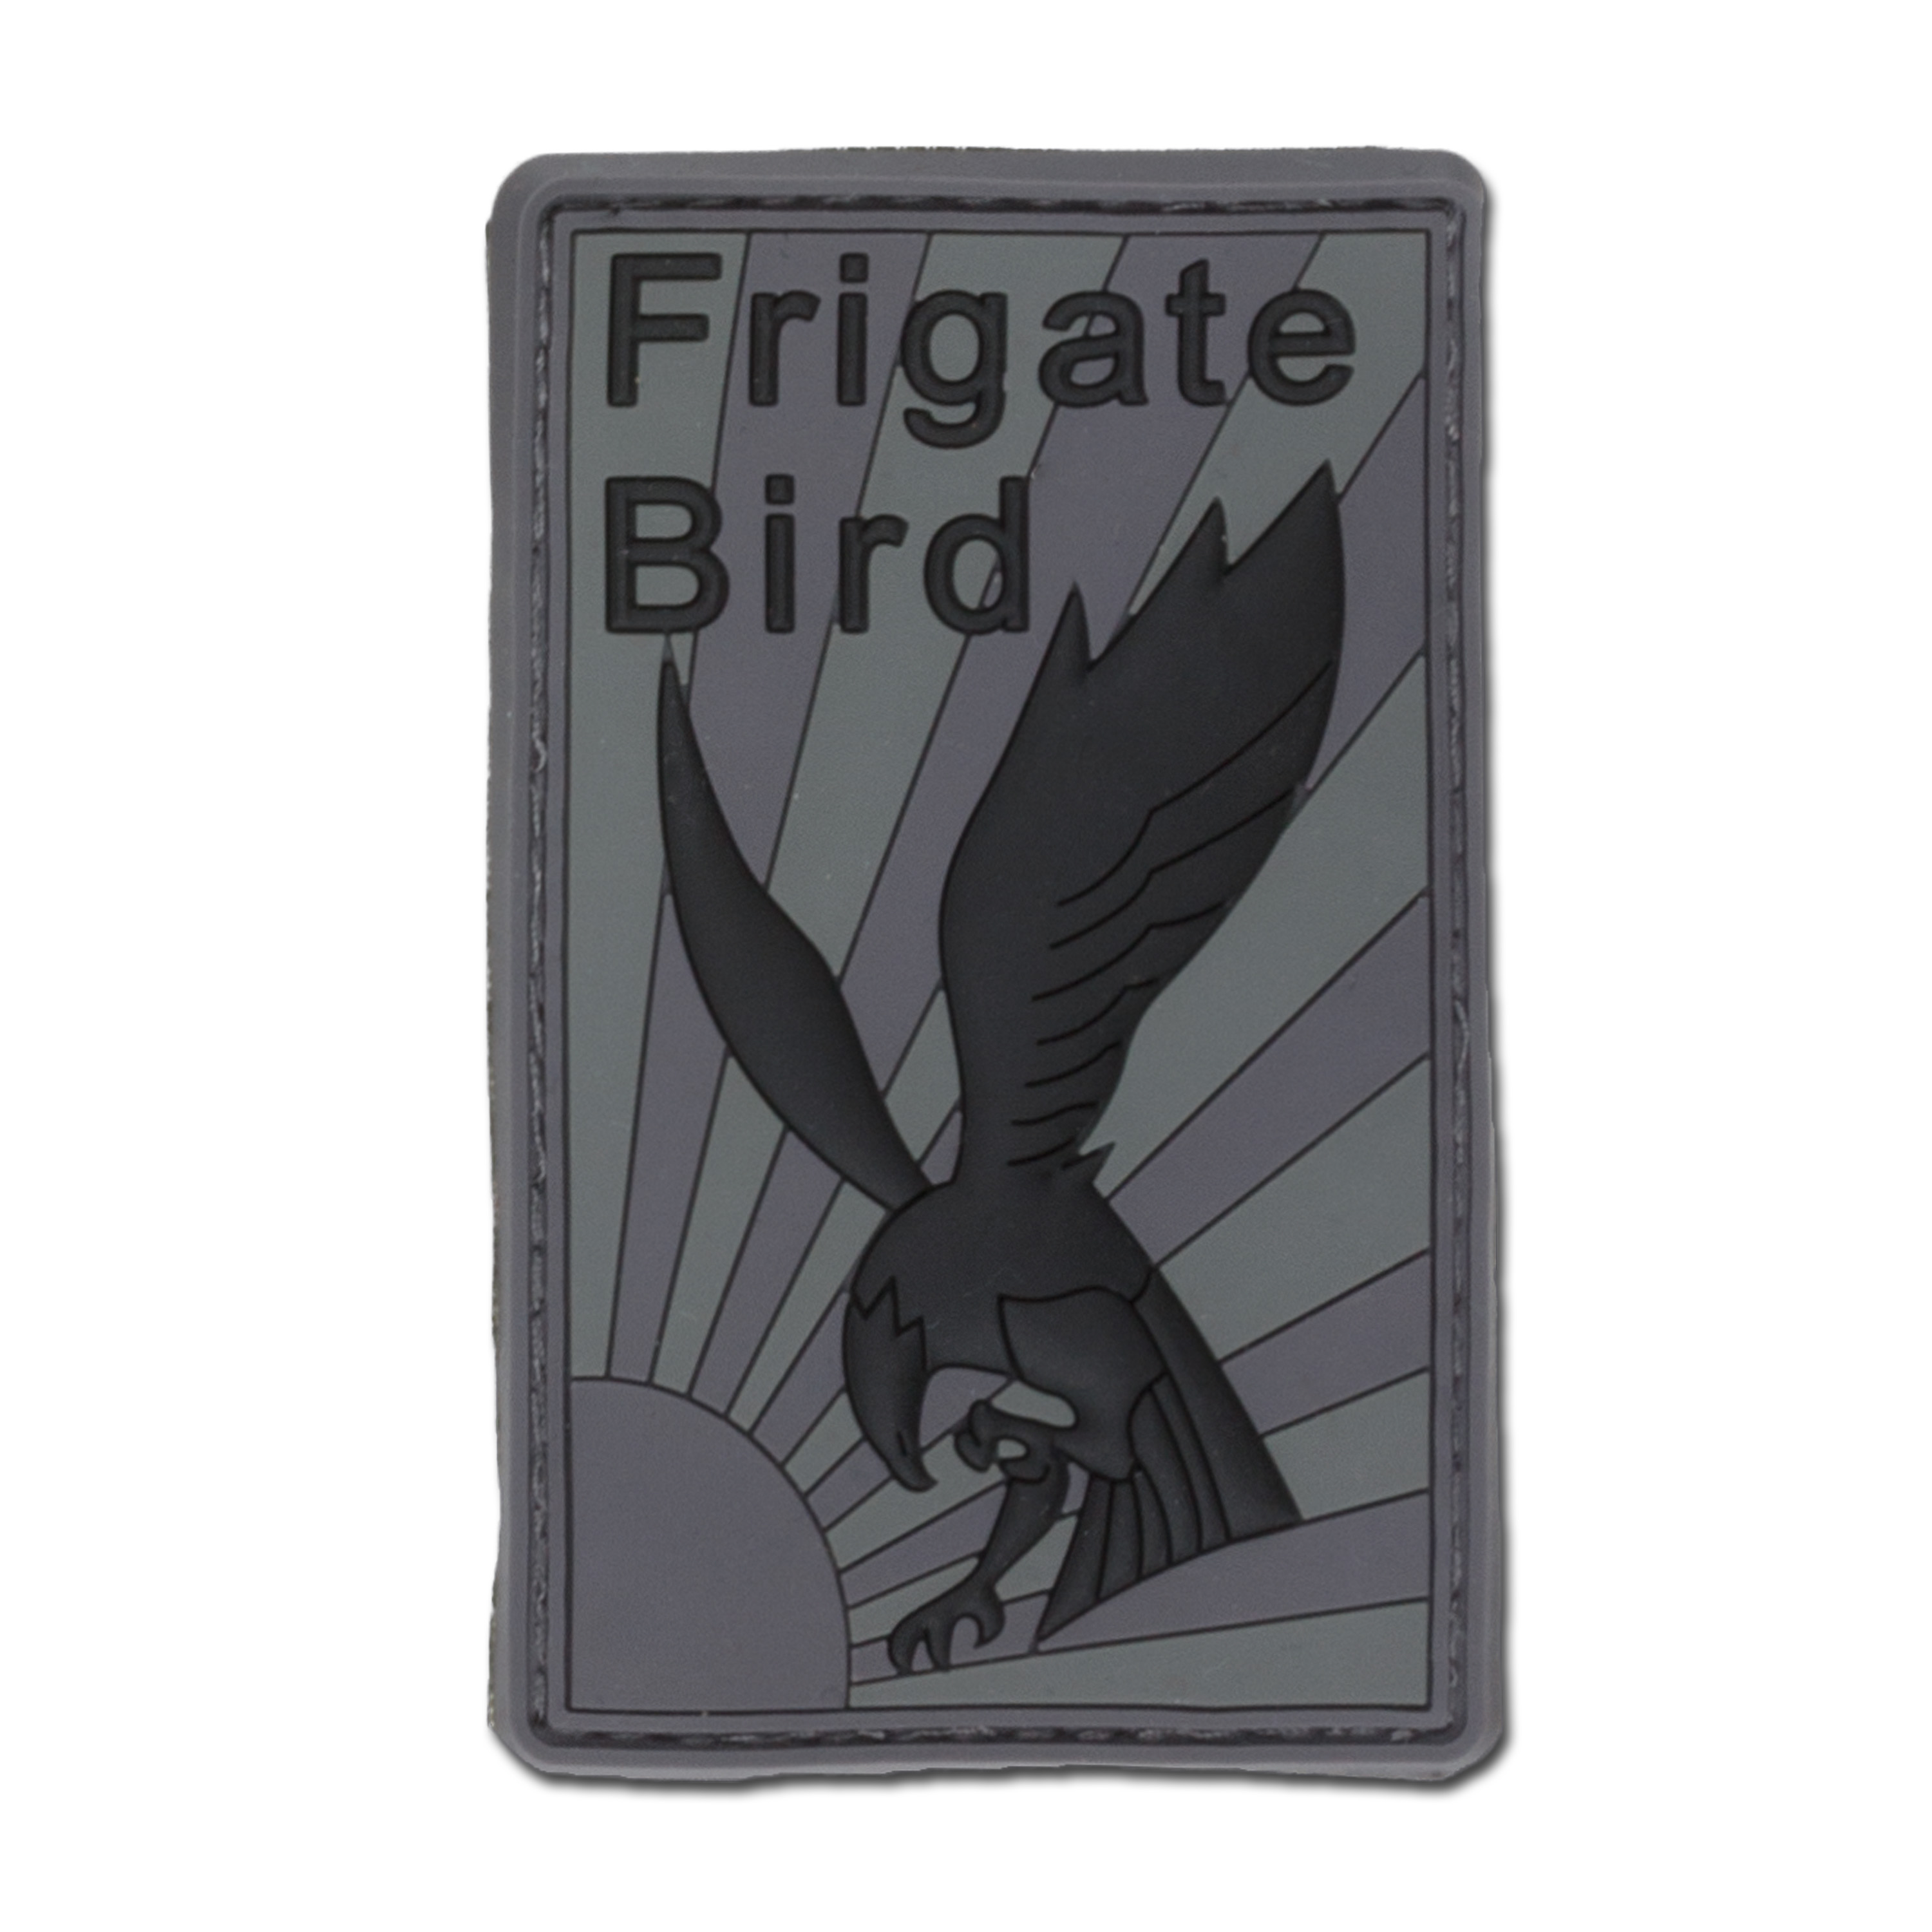 Patch 3D Frigate Bird gris/noir